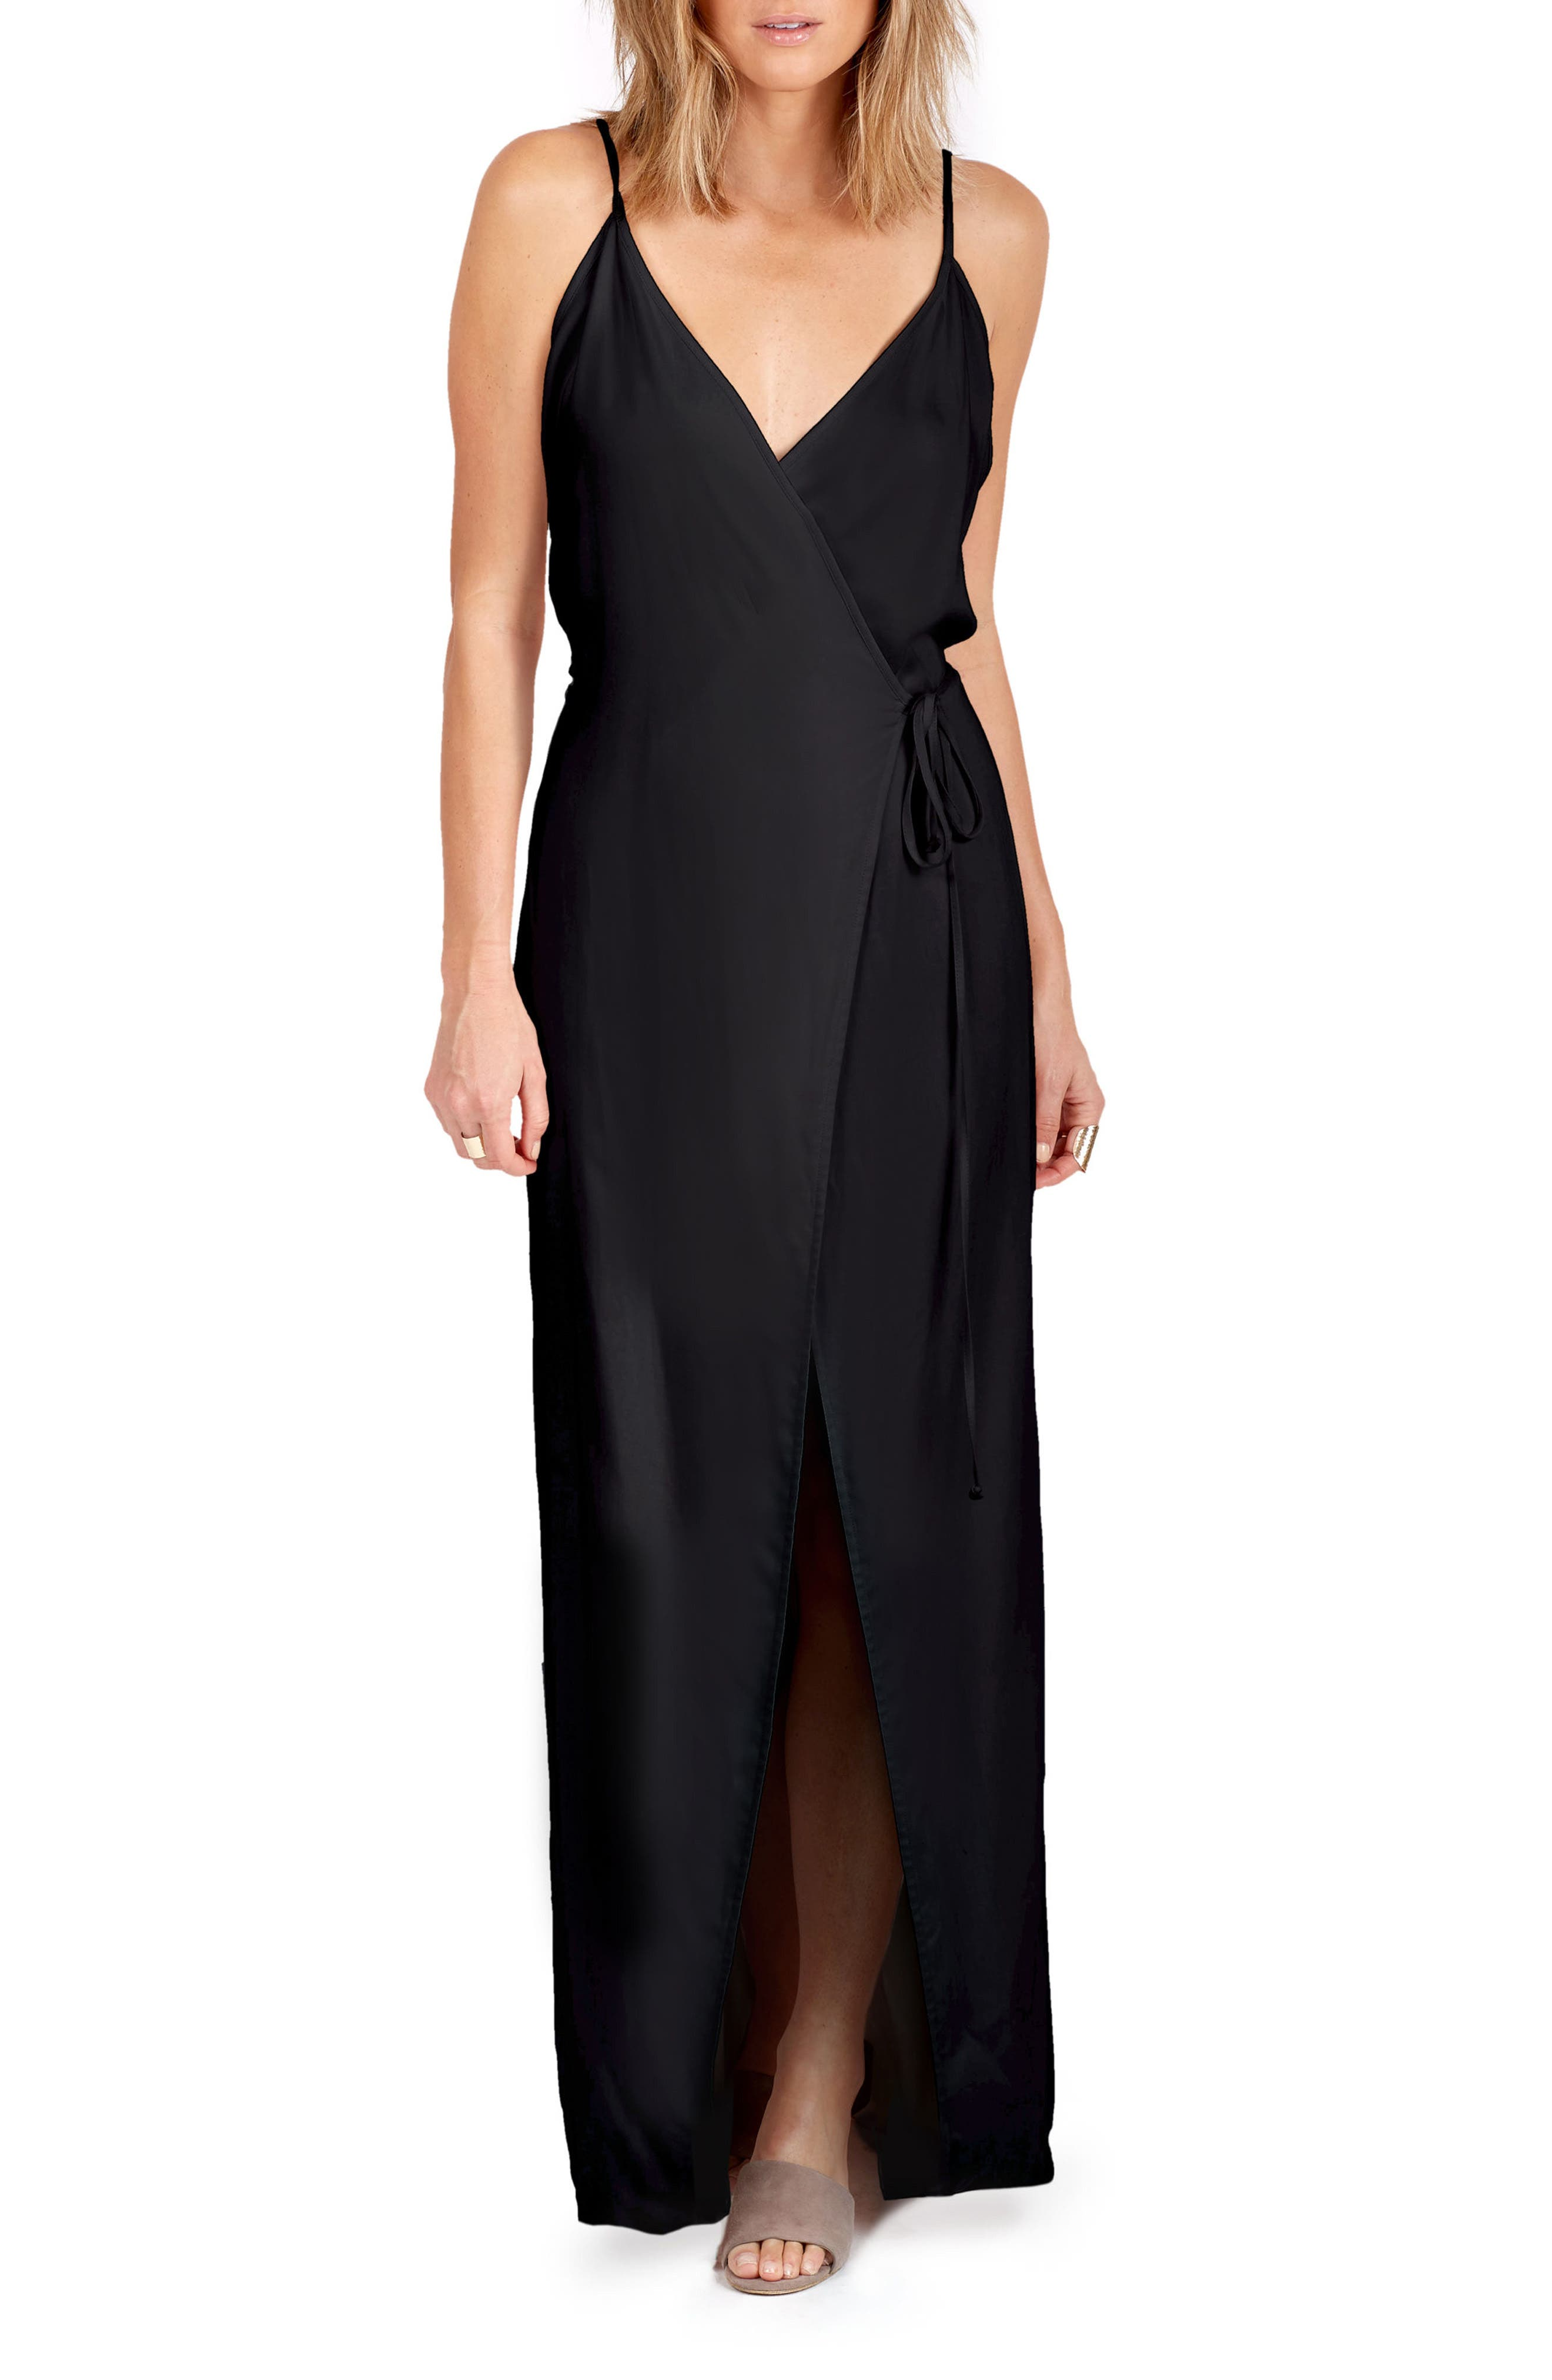 DELACY Leo Faux Wrap Maxi Dress